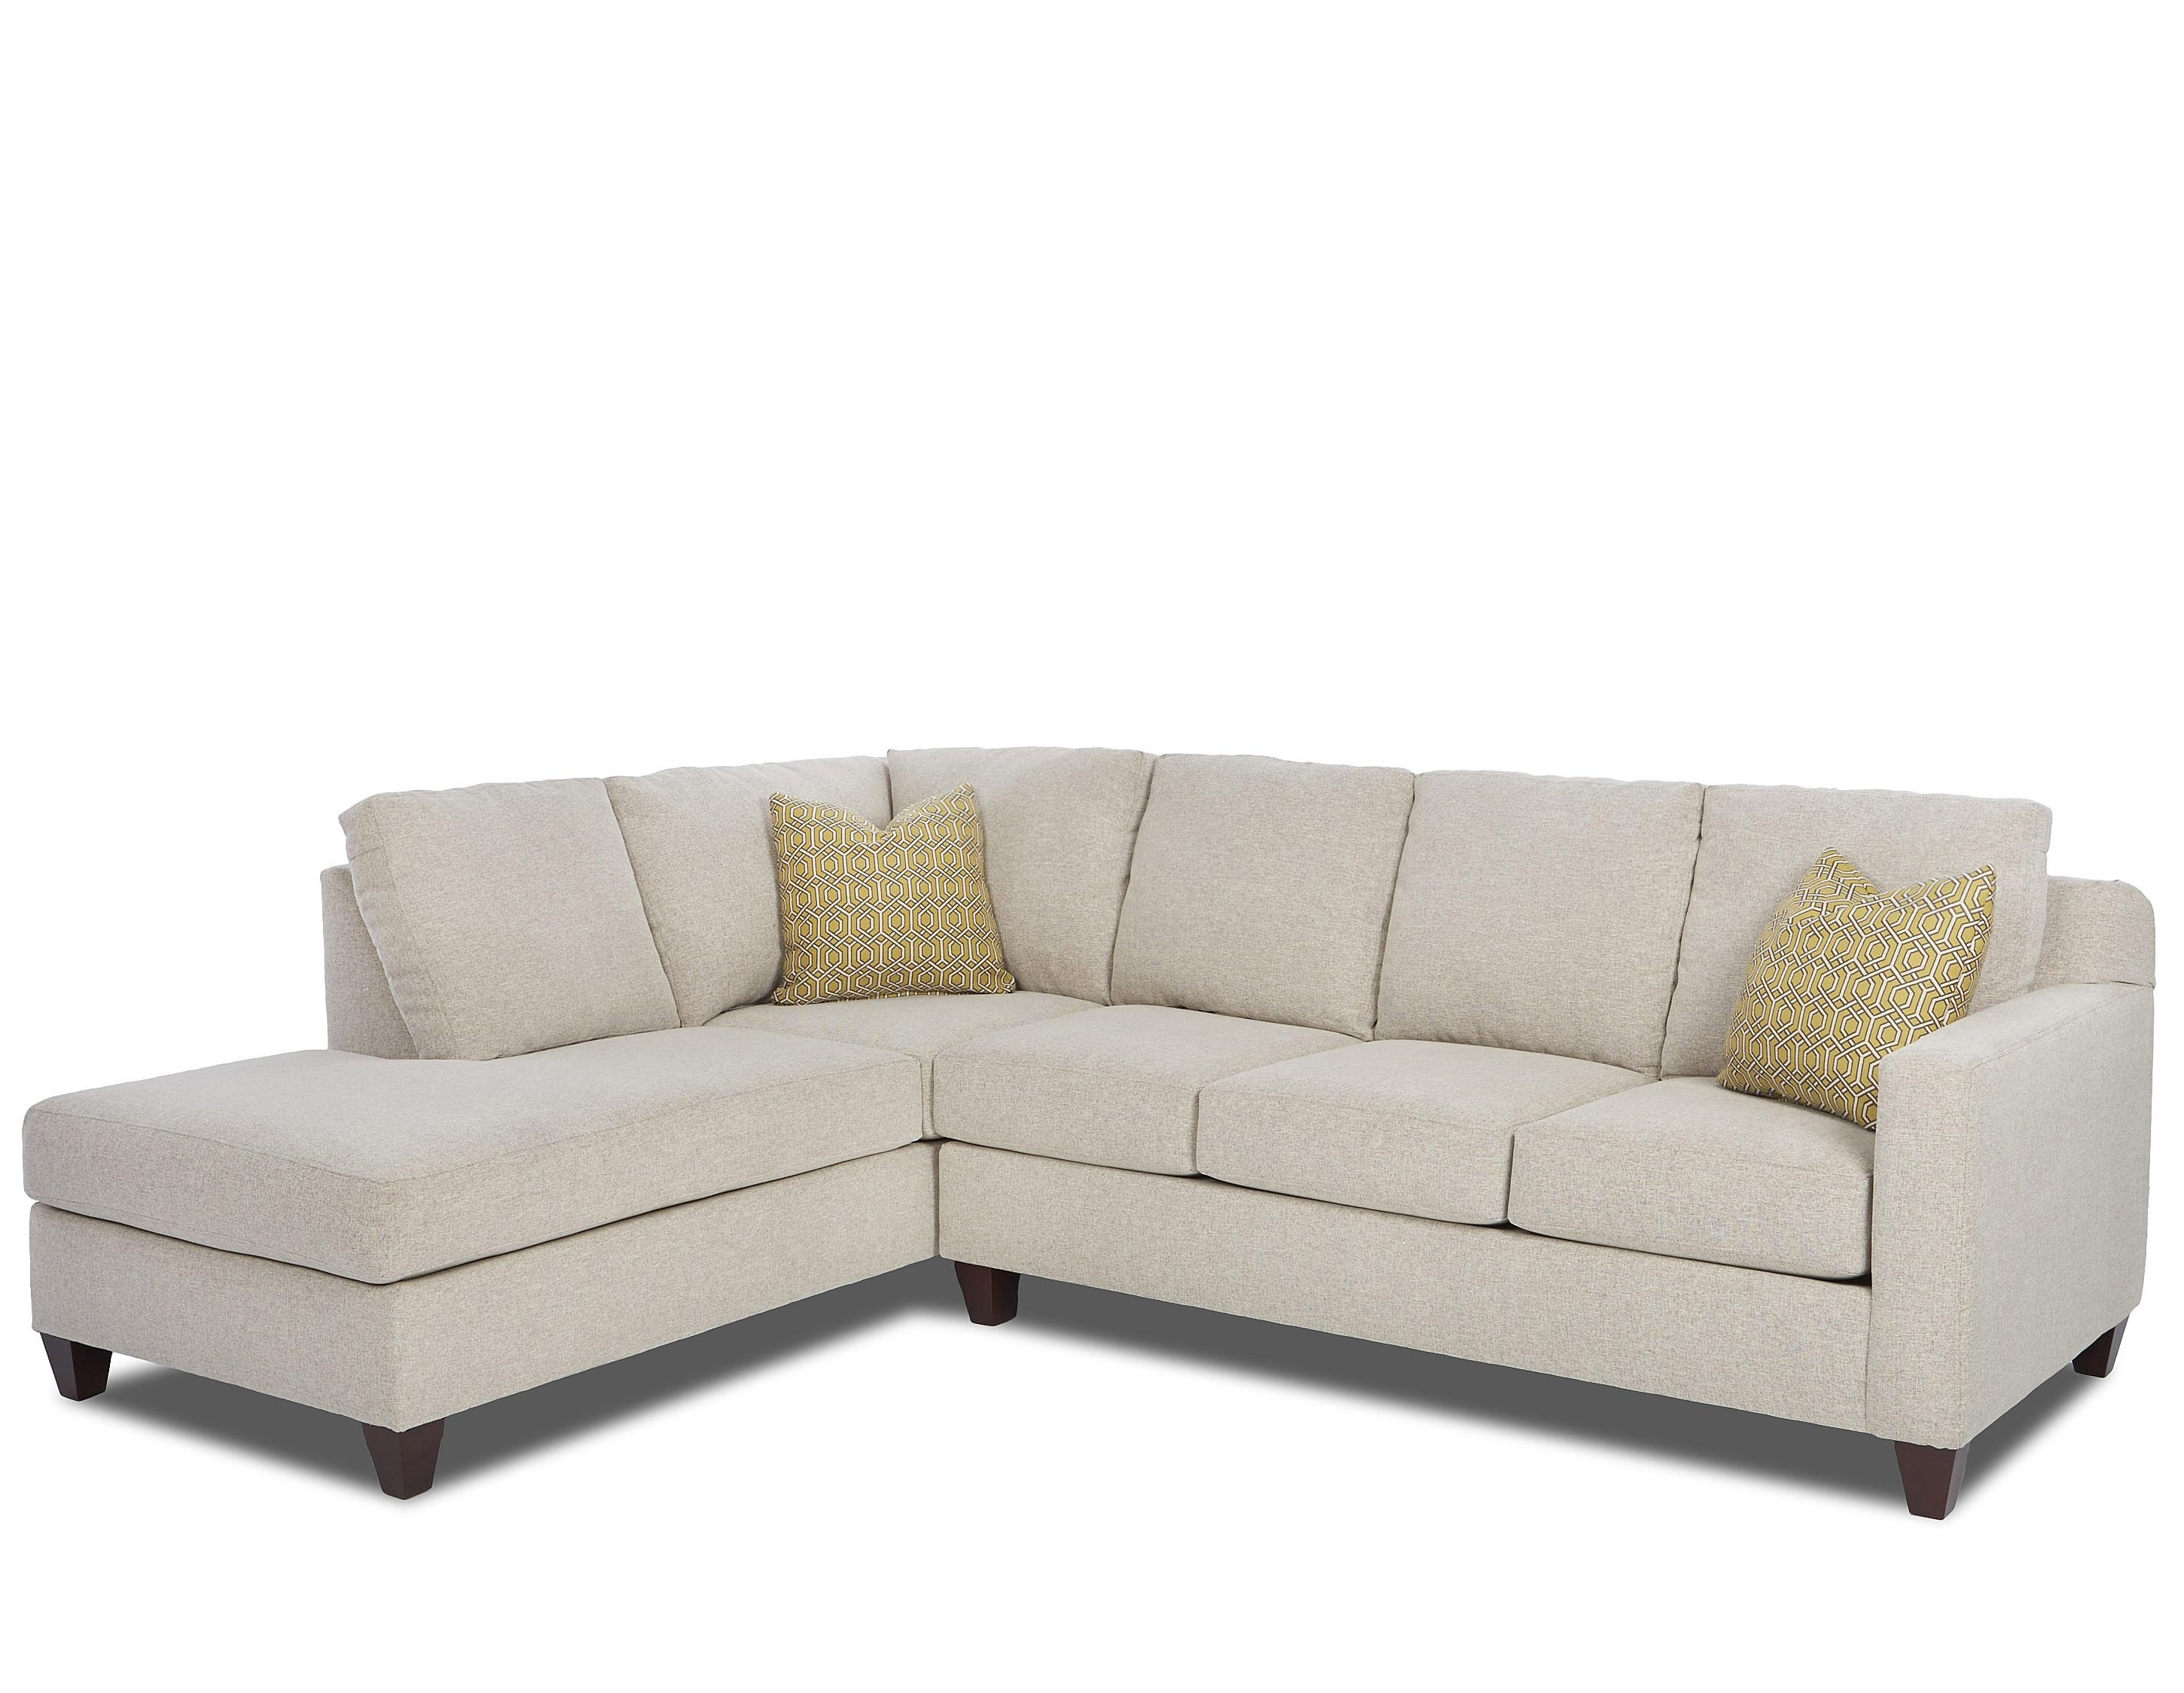 Newest Right Facing Chaise Sectionals Intended For Contemporary 2 Piece Sectional With Right Arm Facing Sofa Chaise (View 10 of 15)